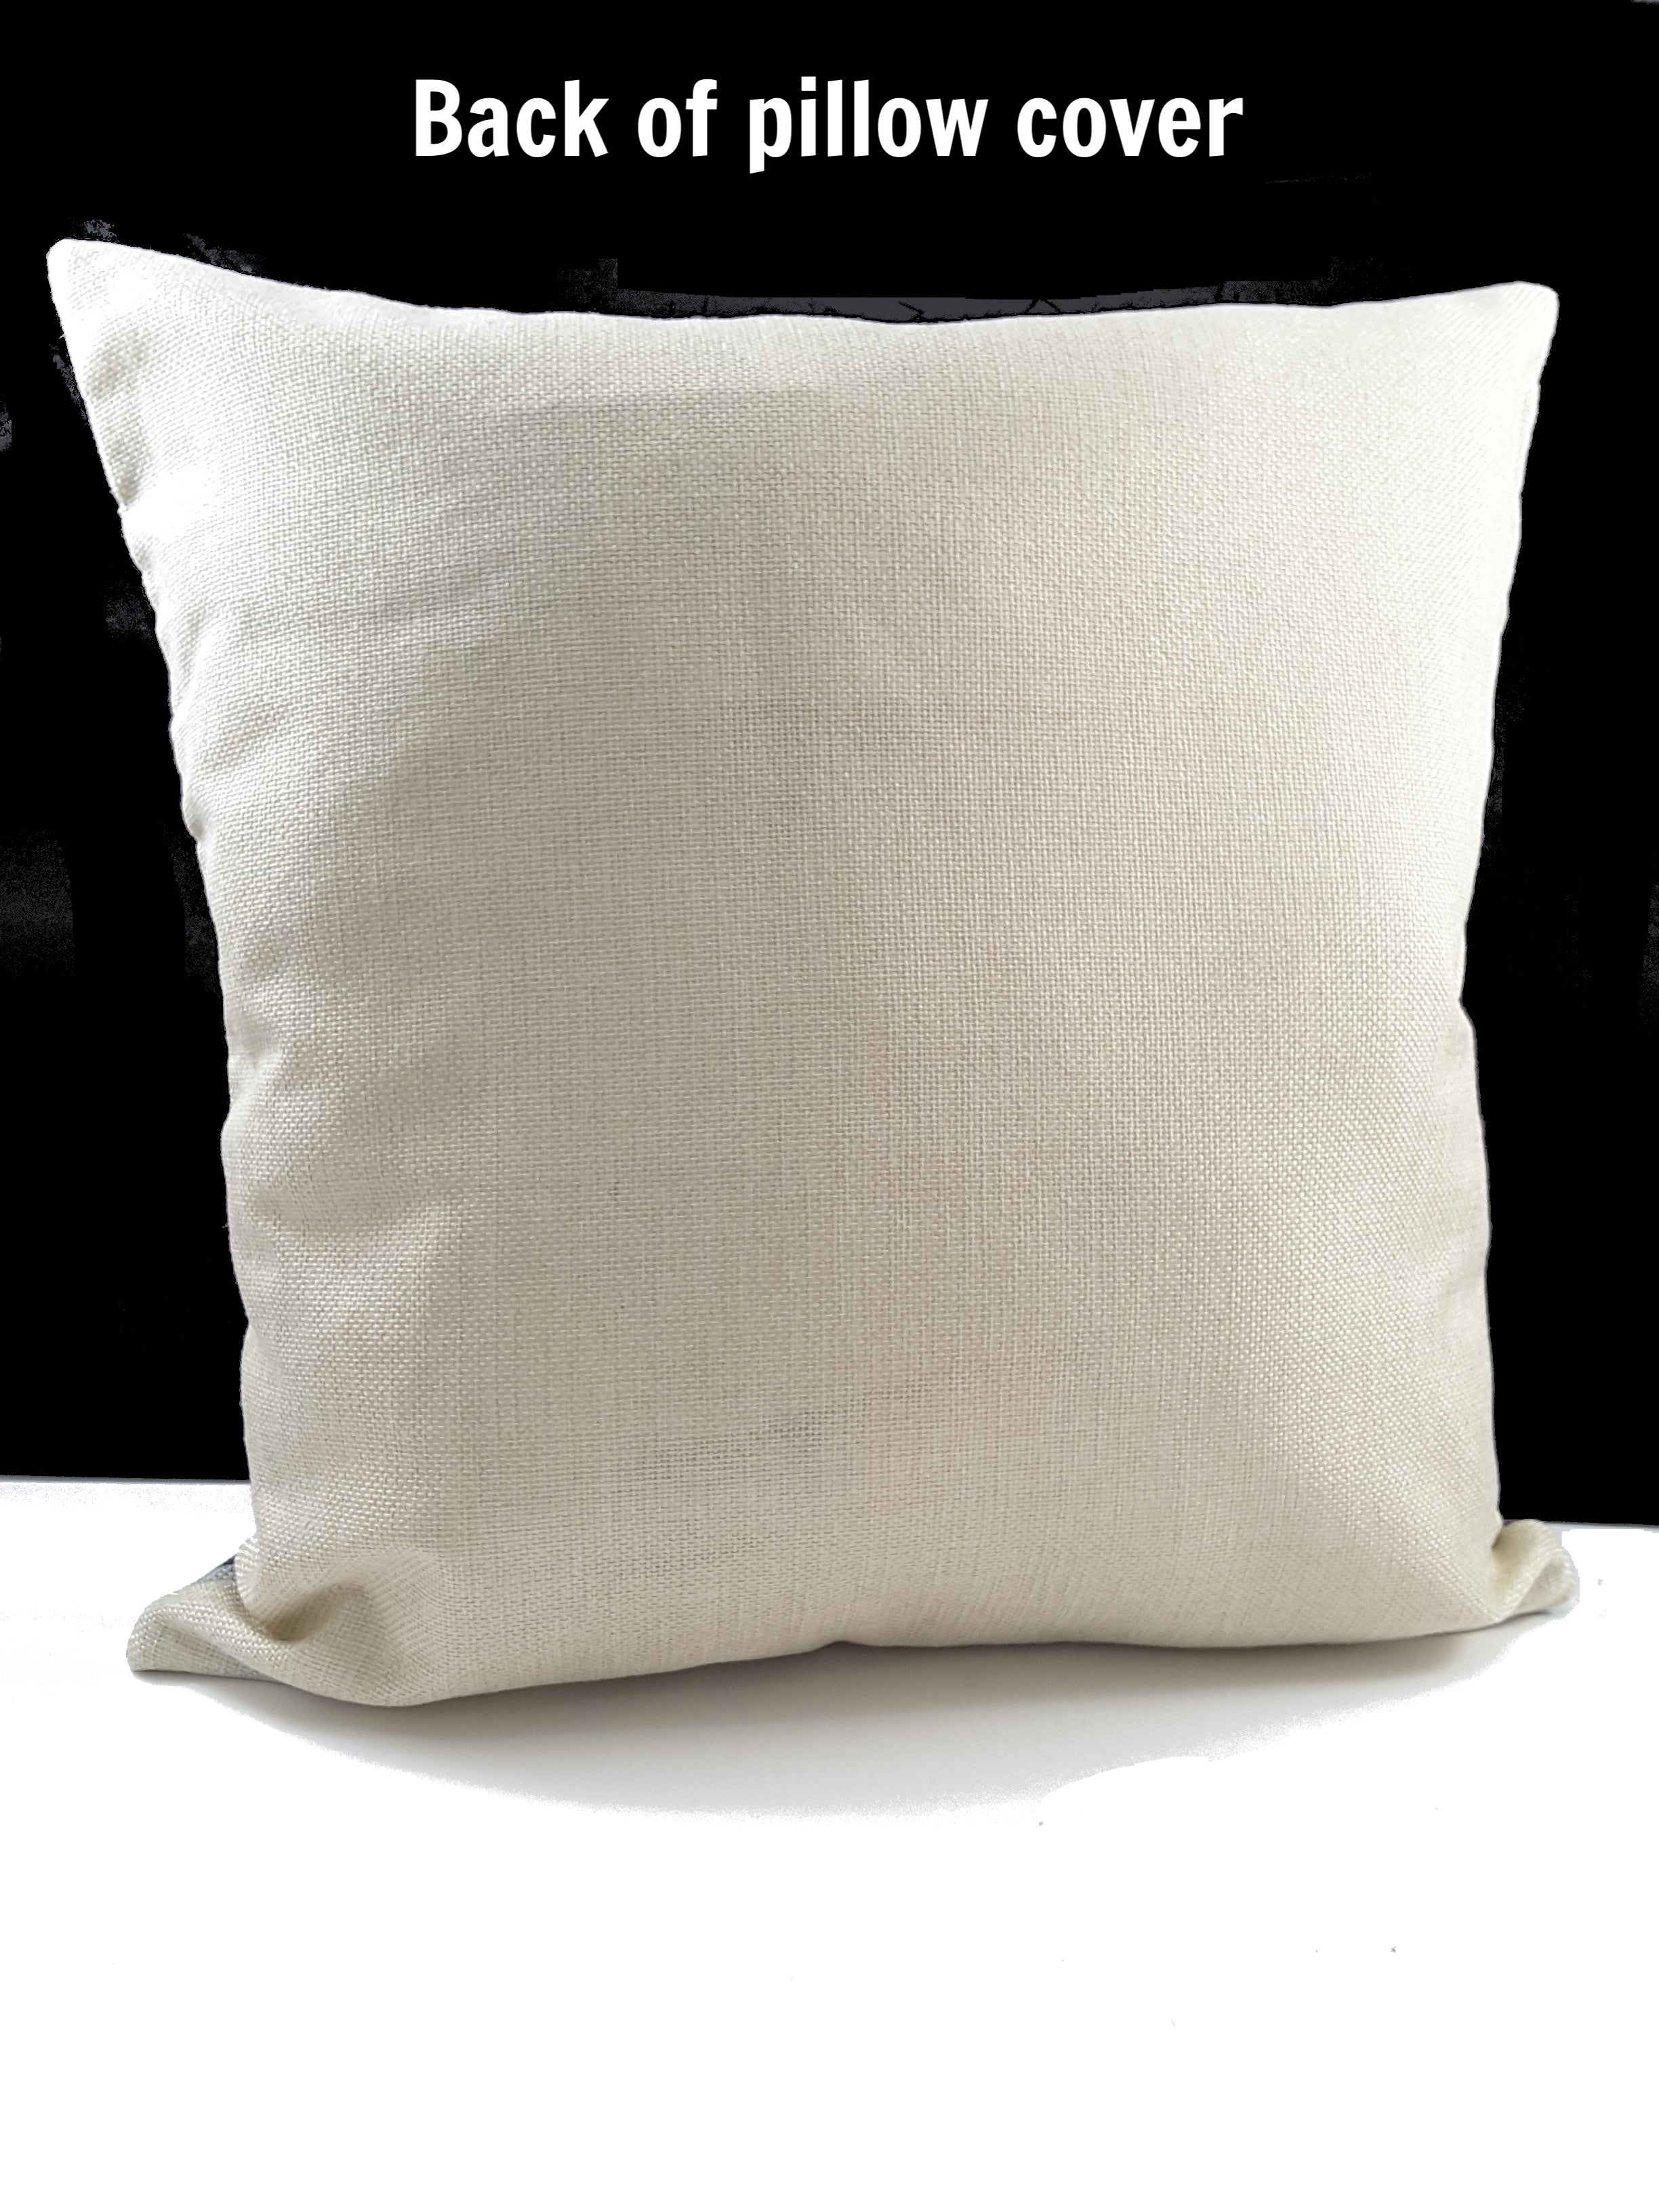 Decorator London Scenery Pillow Covers